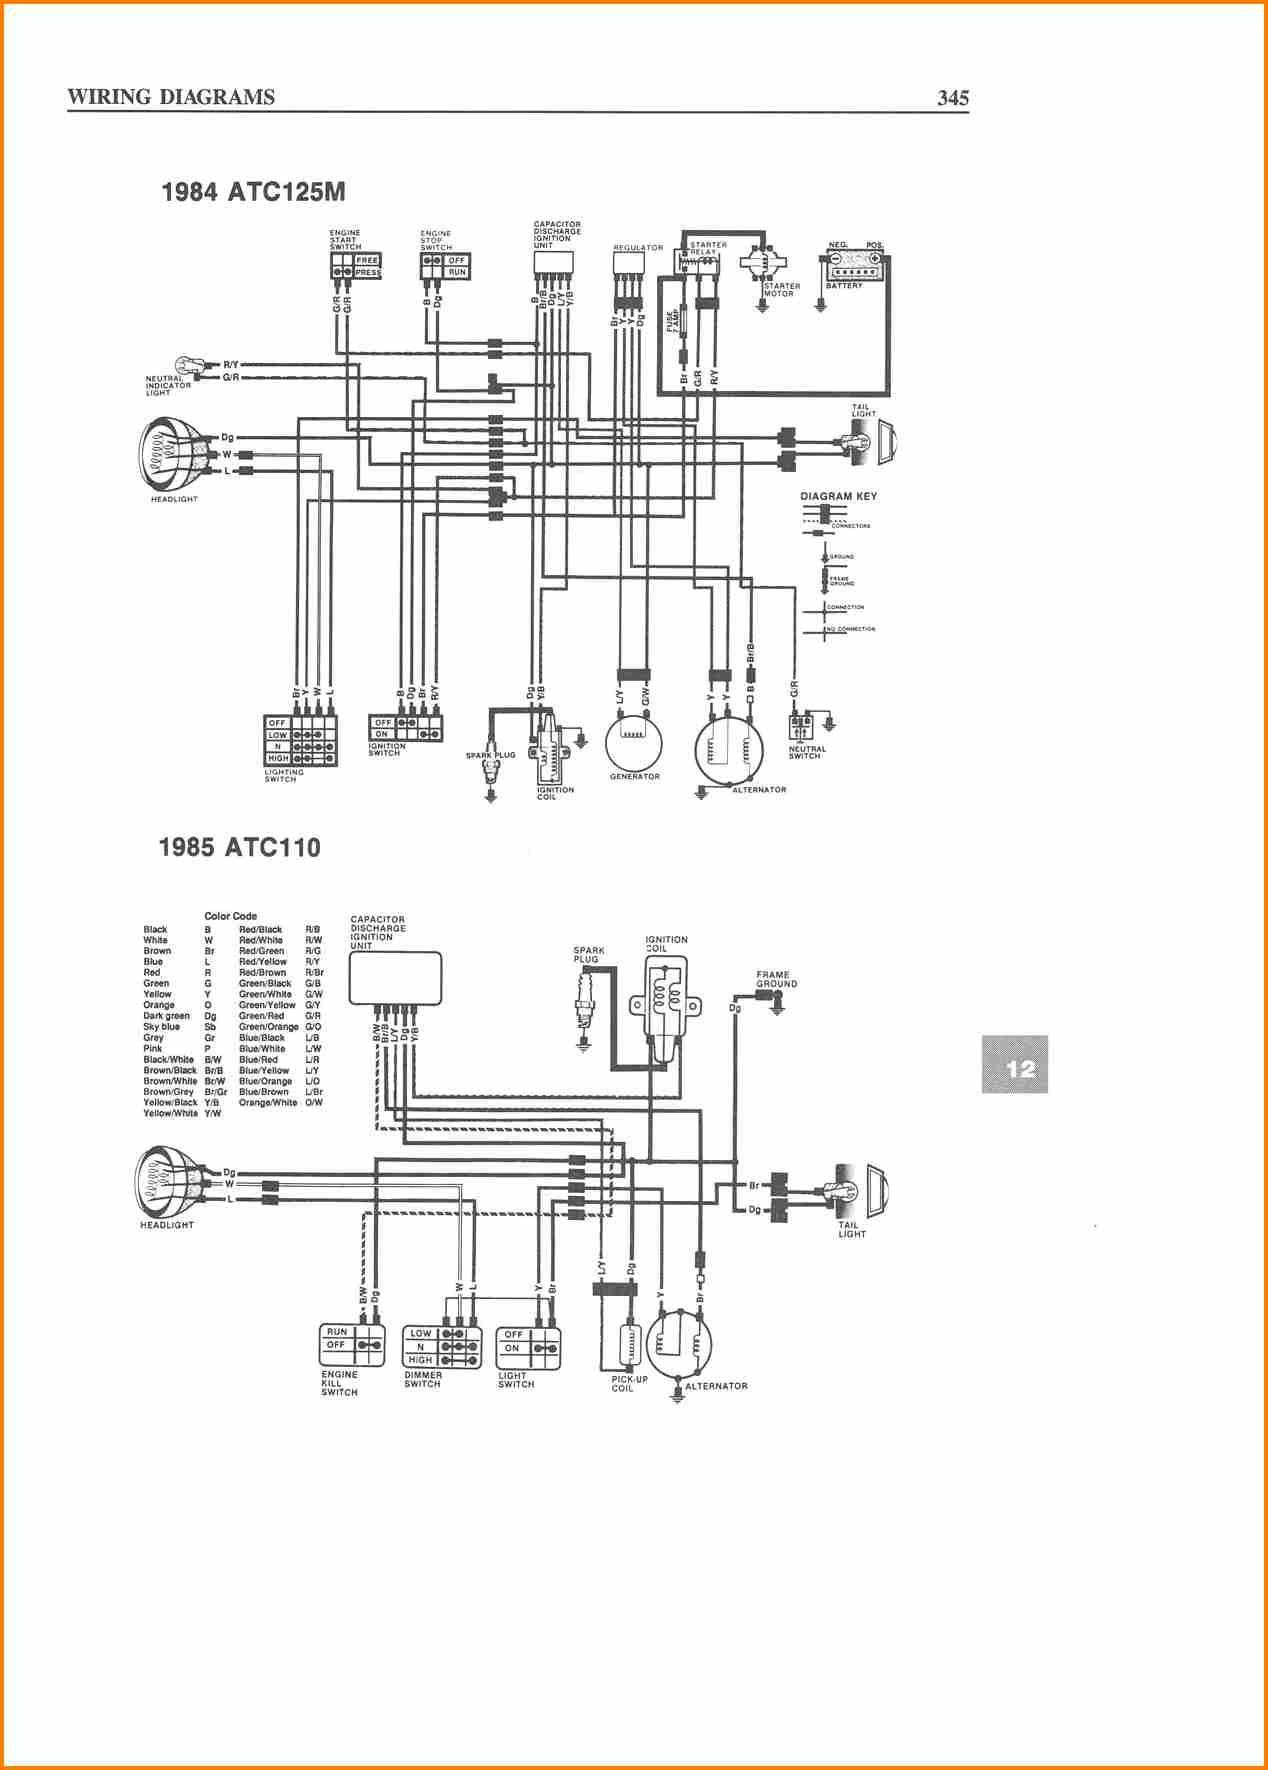 2stracdiigjo additionally Tank 150cc Scooter Wiring Diagram additionally Linhai 50cc Wiring Diagram in addition Repair And Service Manuals furthermore Kymco Agility Wiring Harness Diagram. on 50cc gy6 scooter wiring diagram